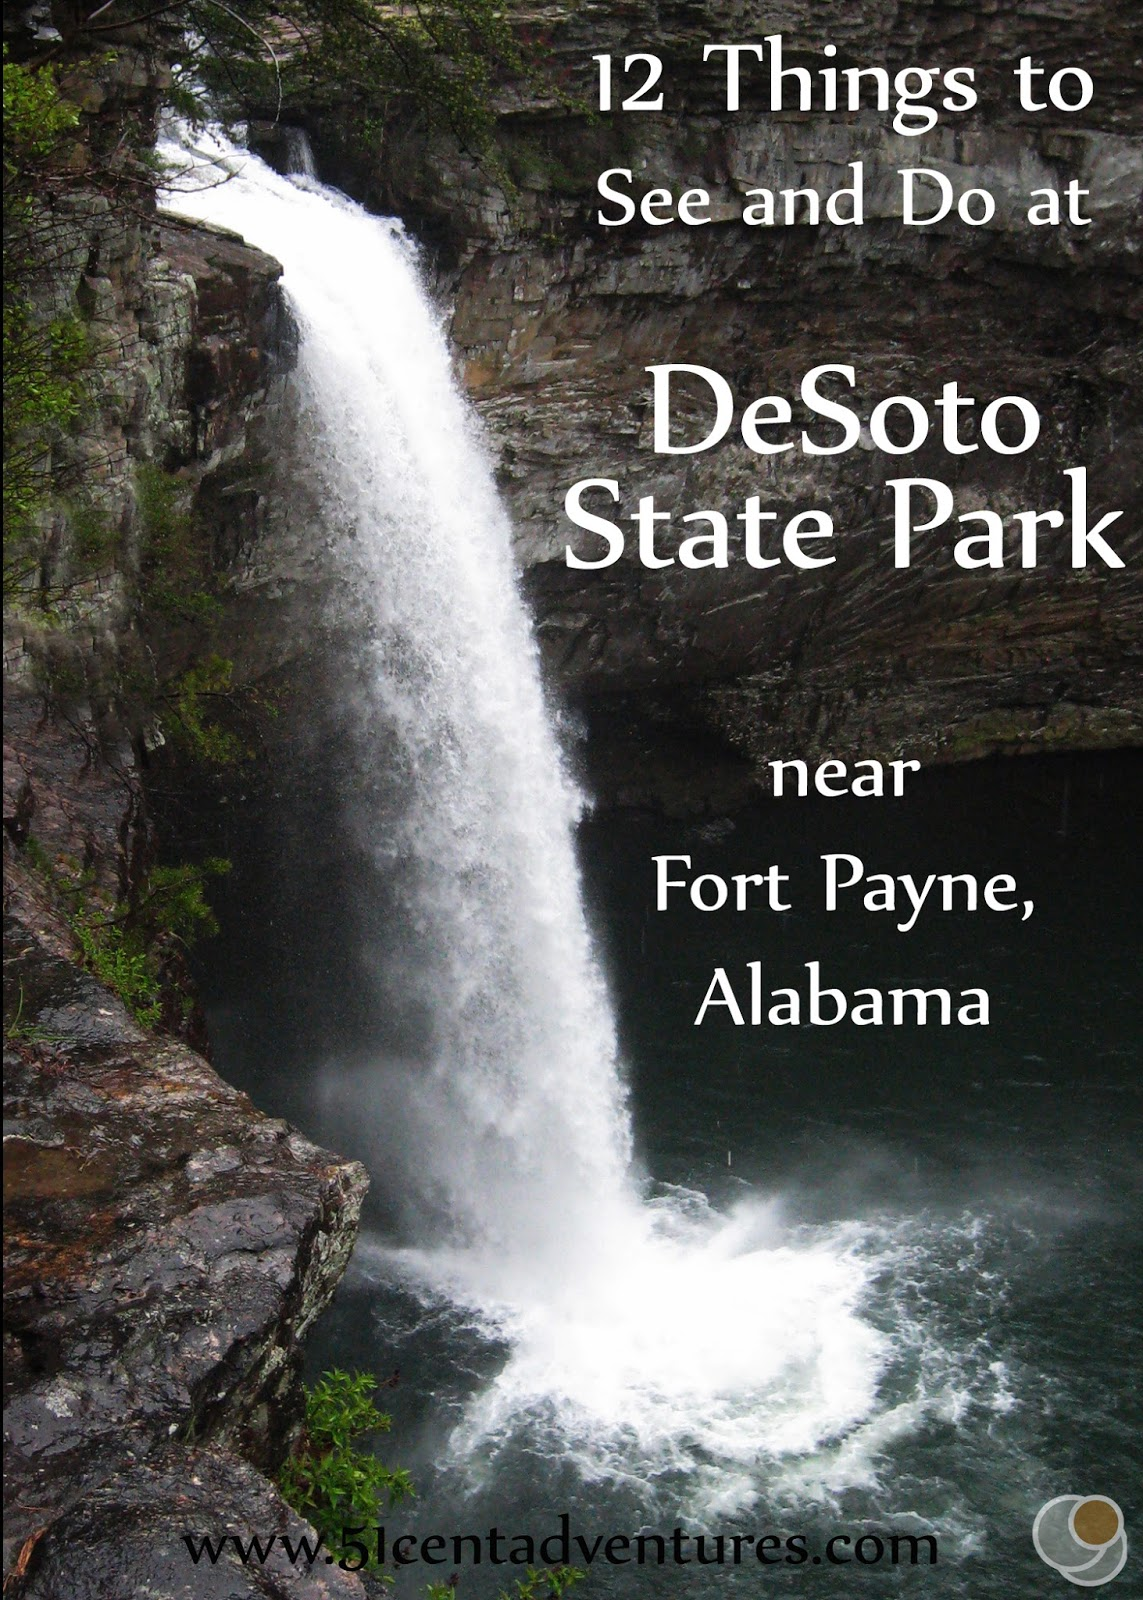 51 Cent Adventures 12 Things To See And Do At Desoto